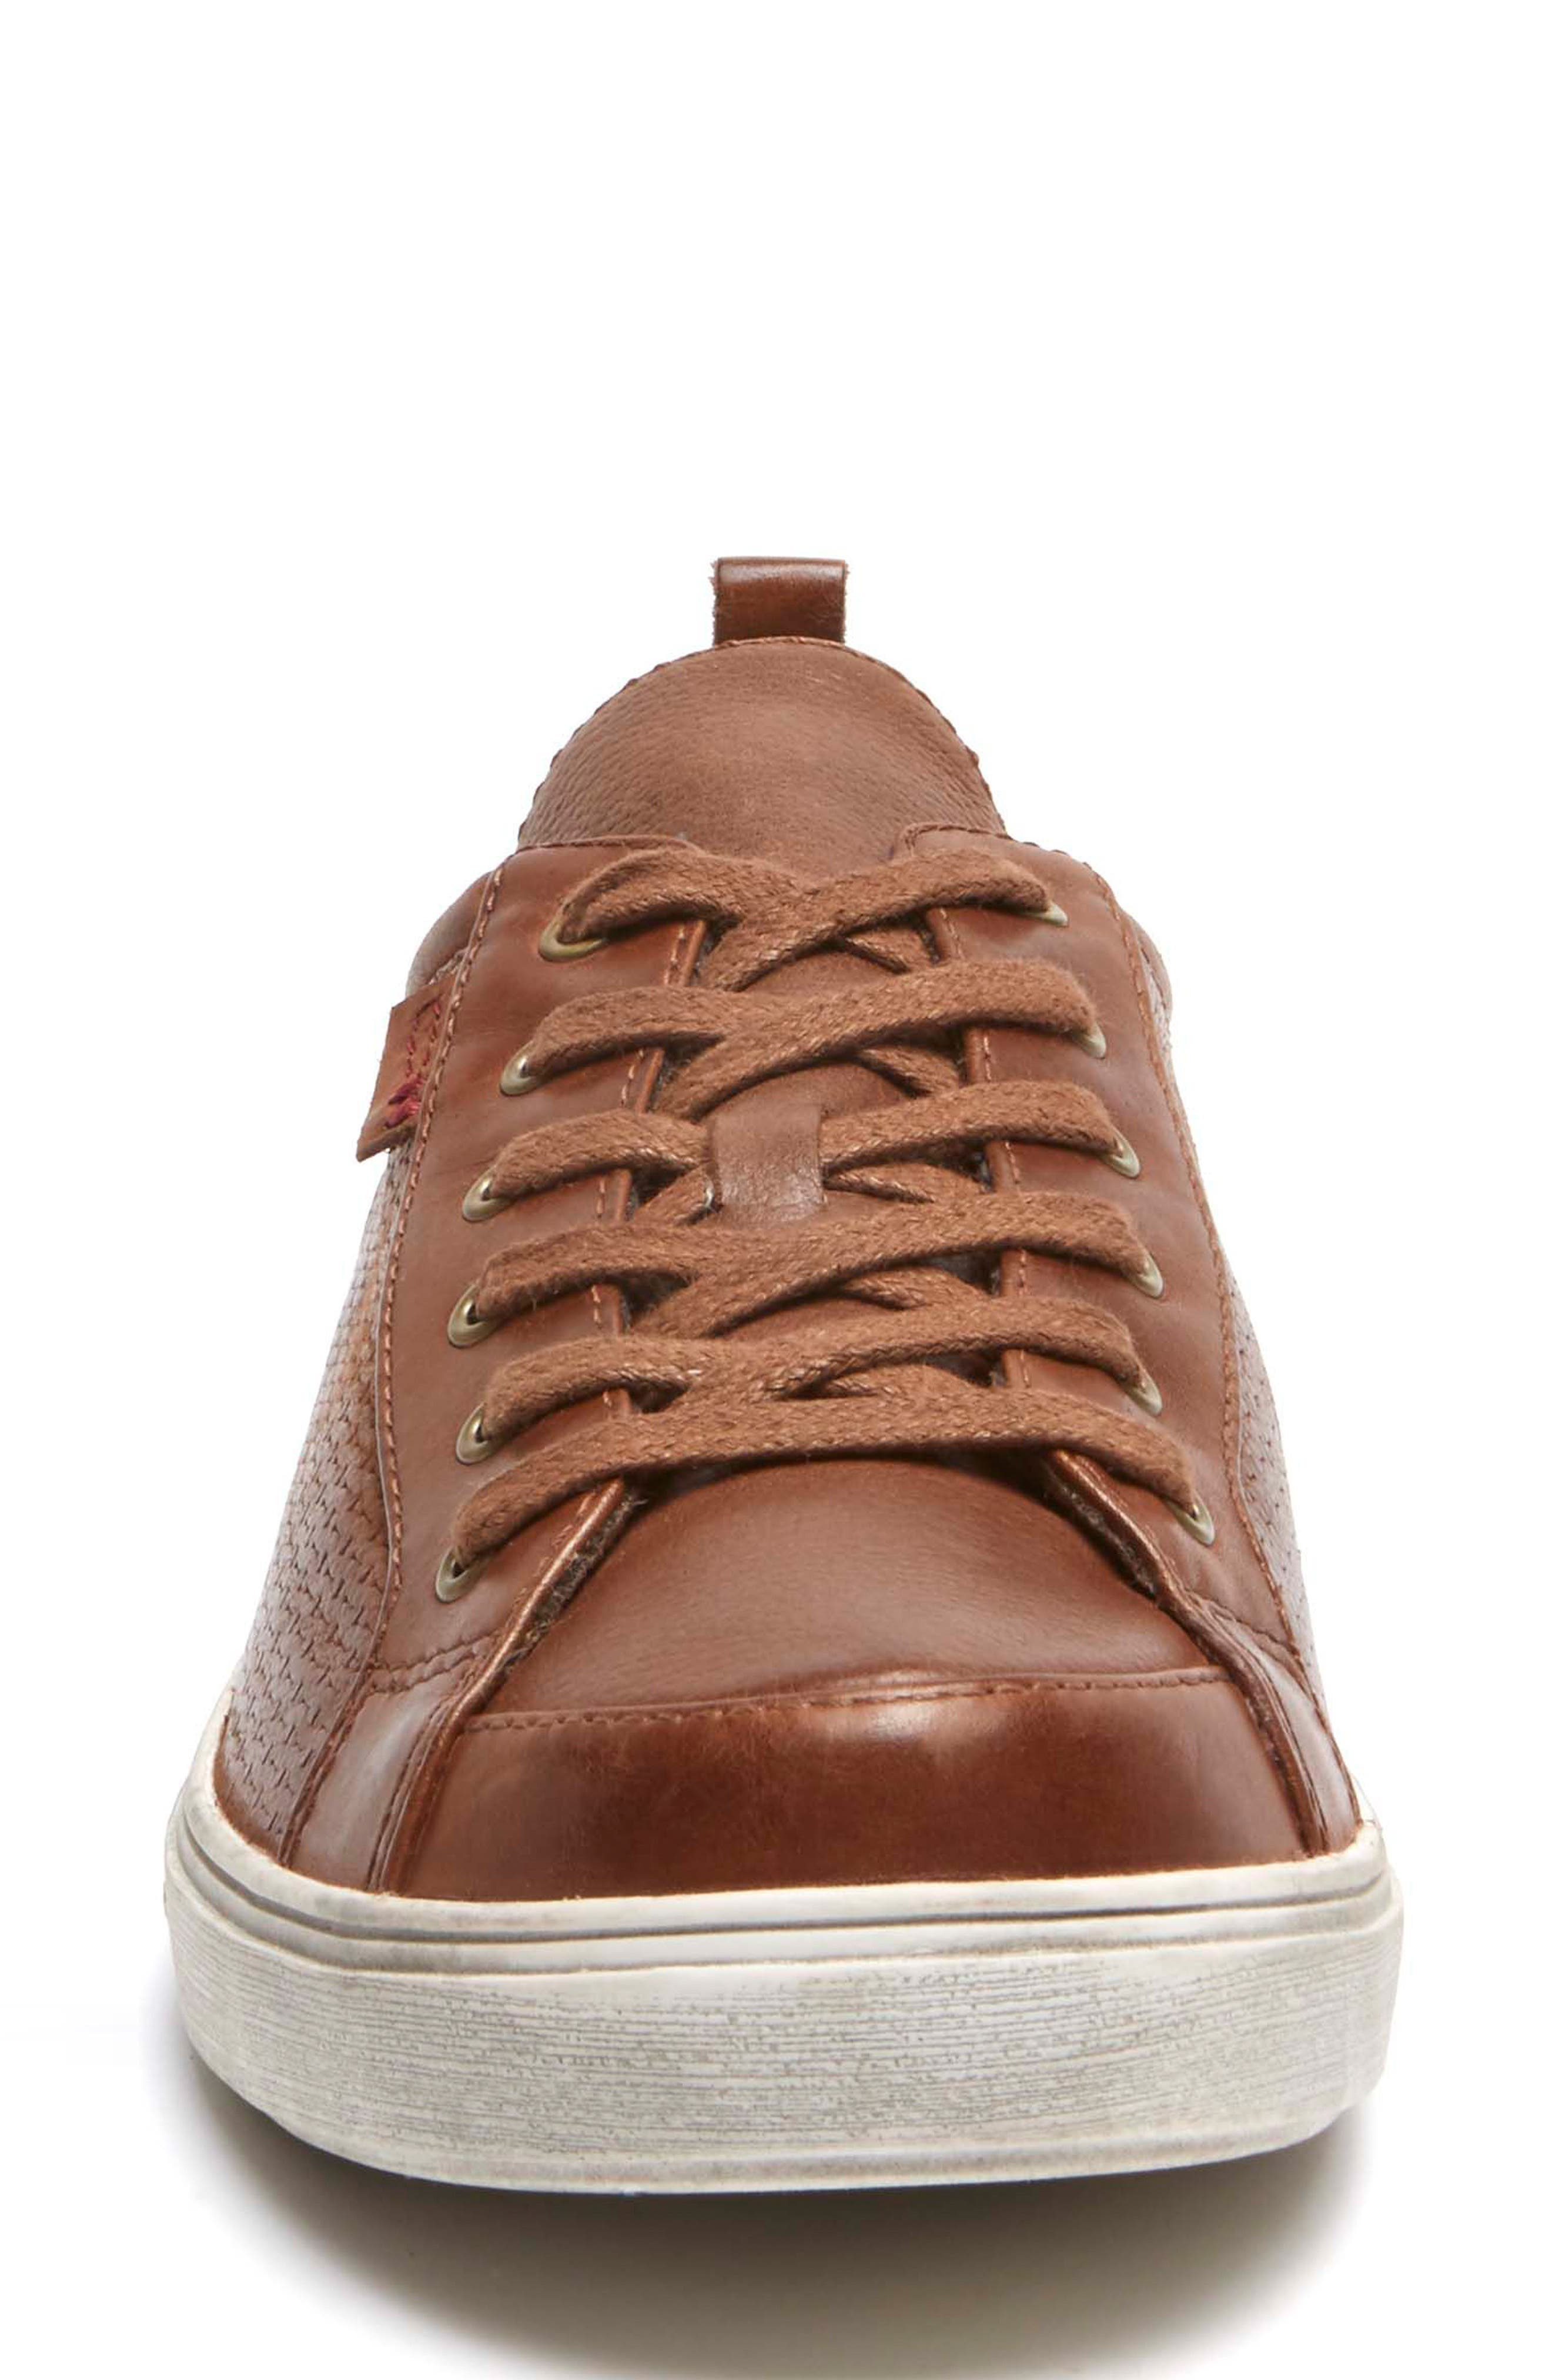 Willa Sneaker,                             Alternate thumbnail 4, color,                             ALMOND LEATHER